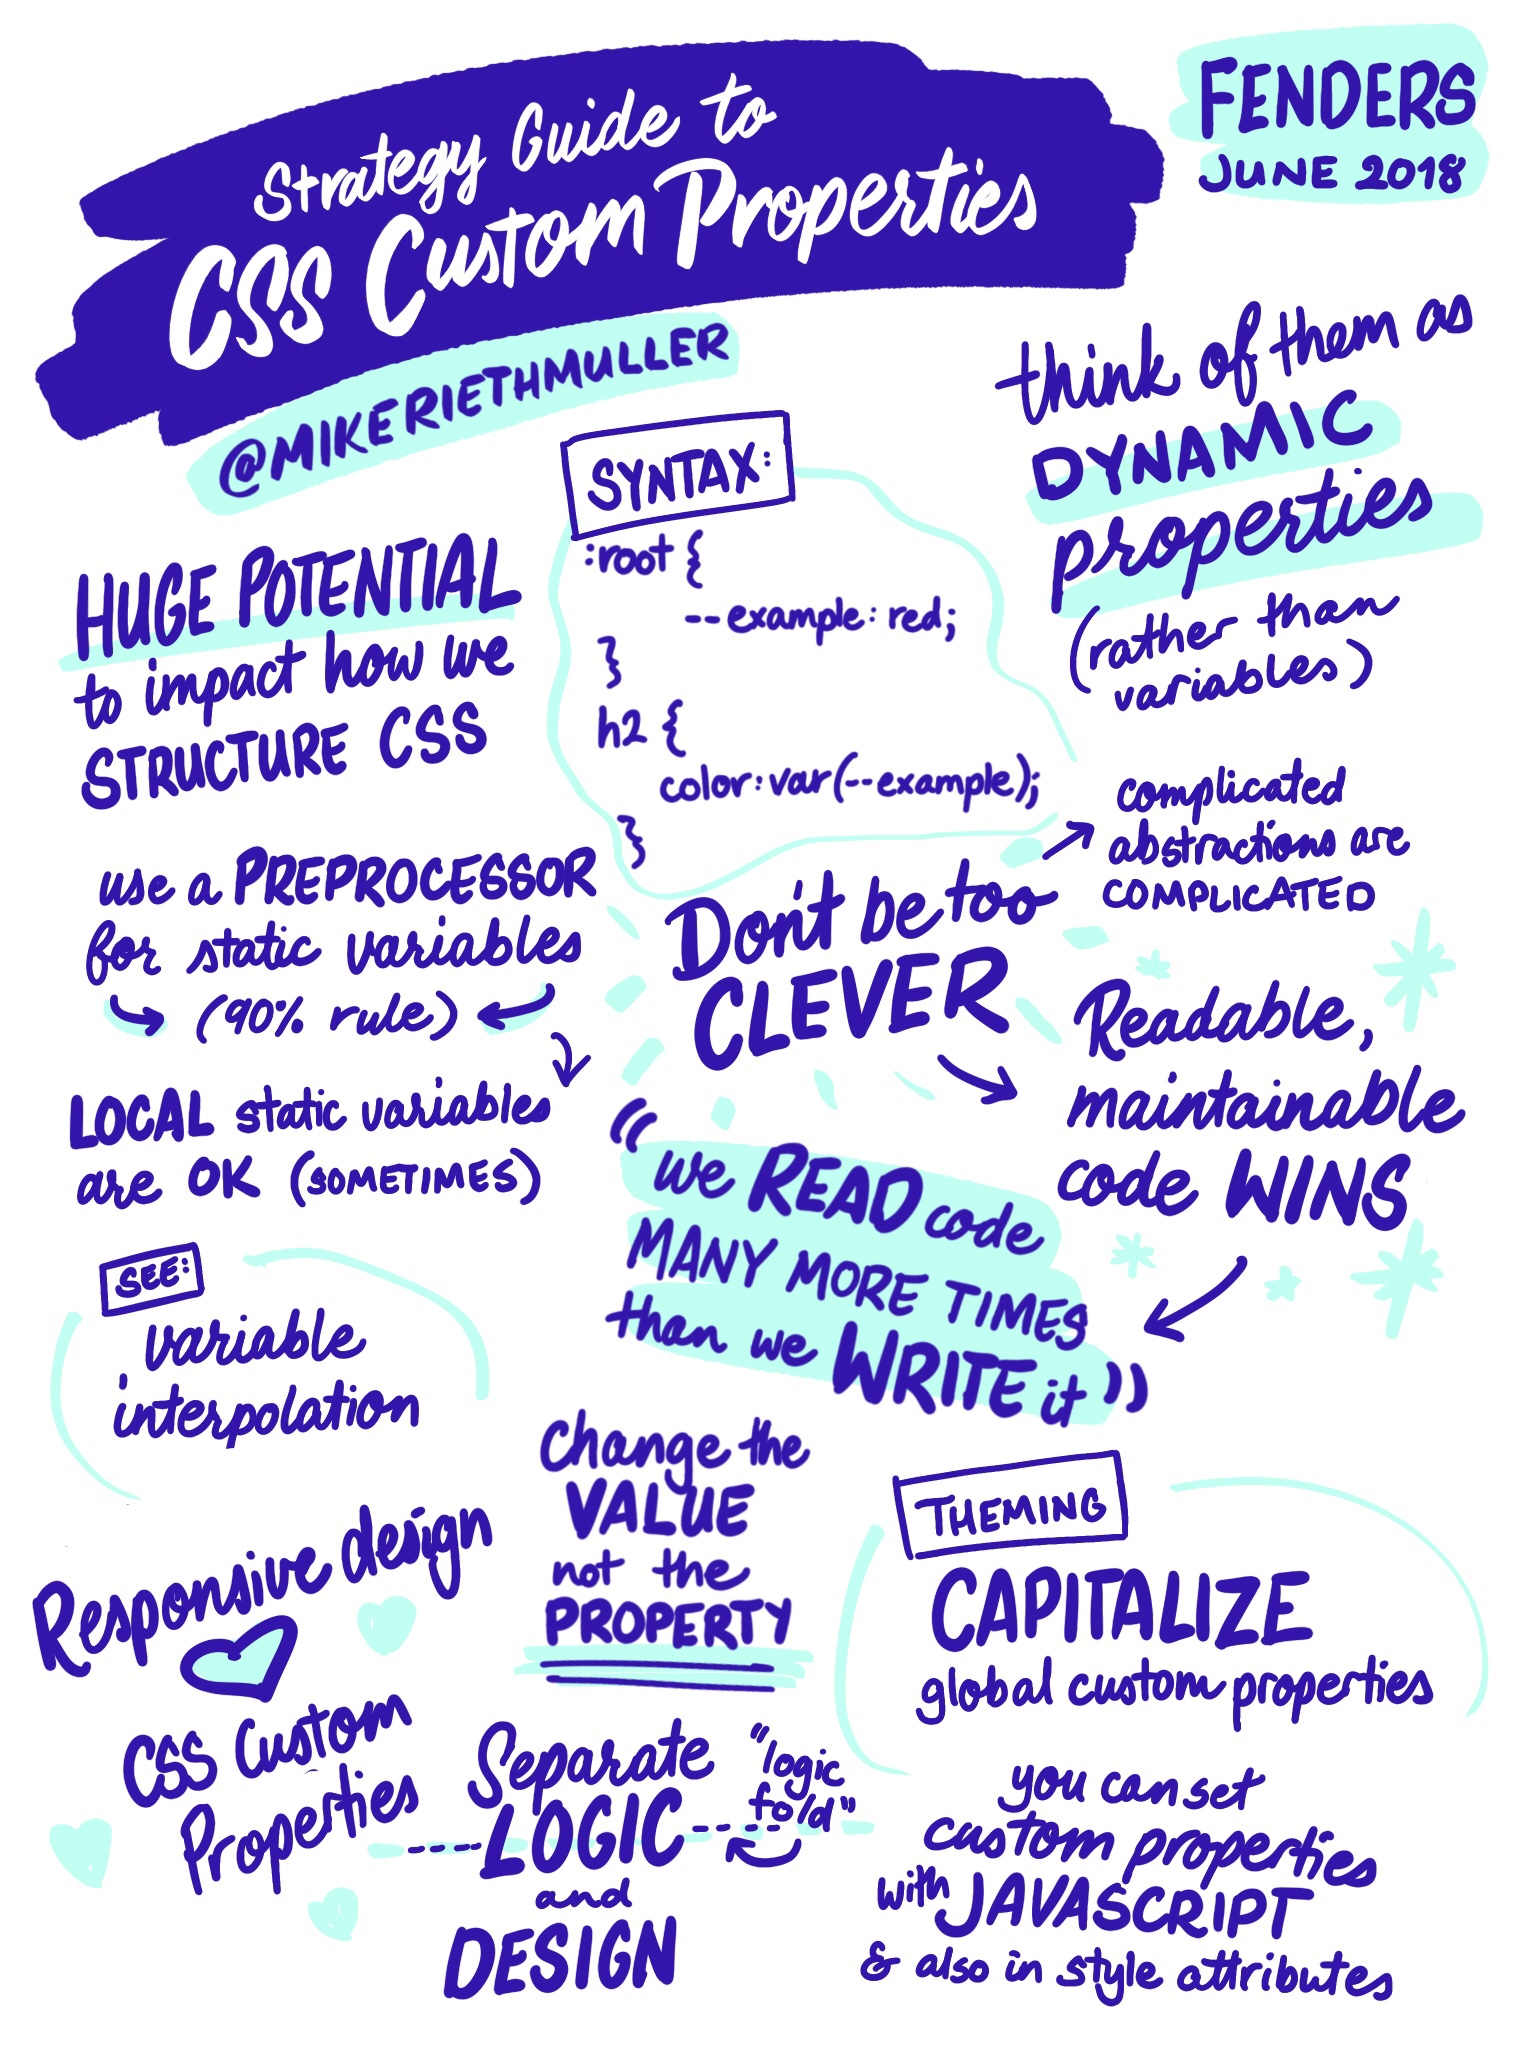 Strategy Guide to CSS Custom Properties sketchnote